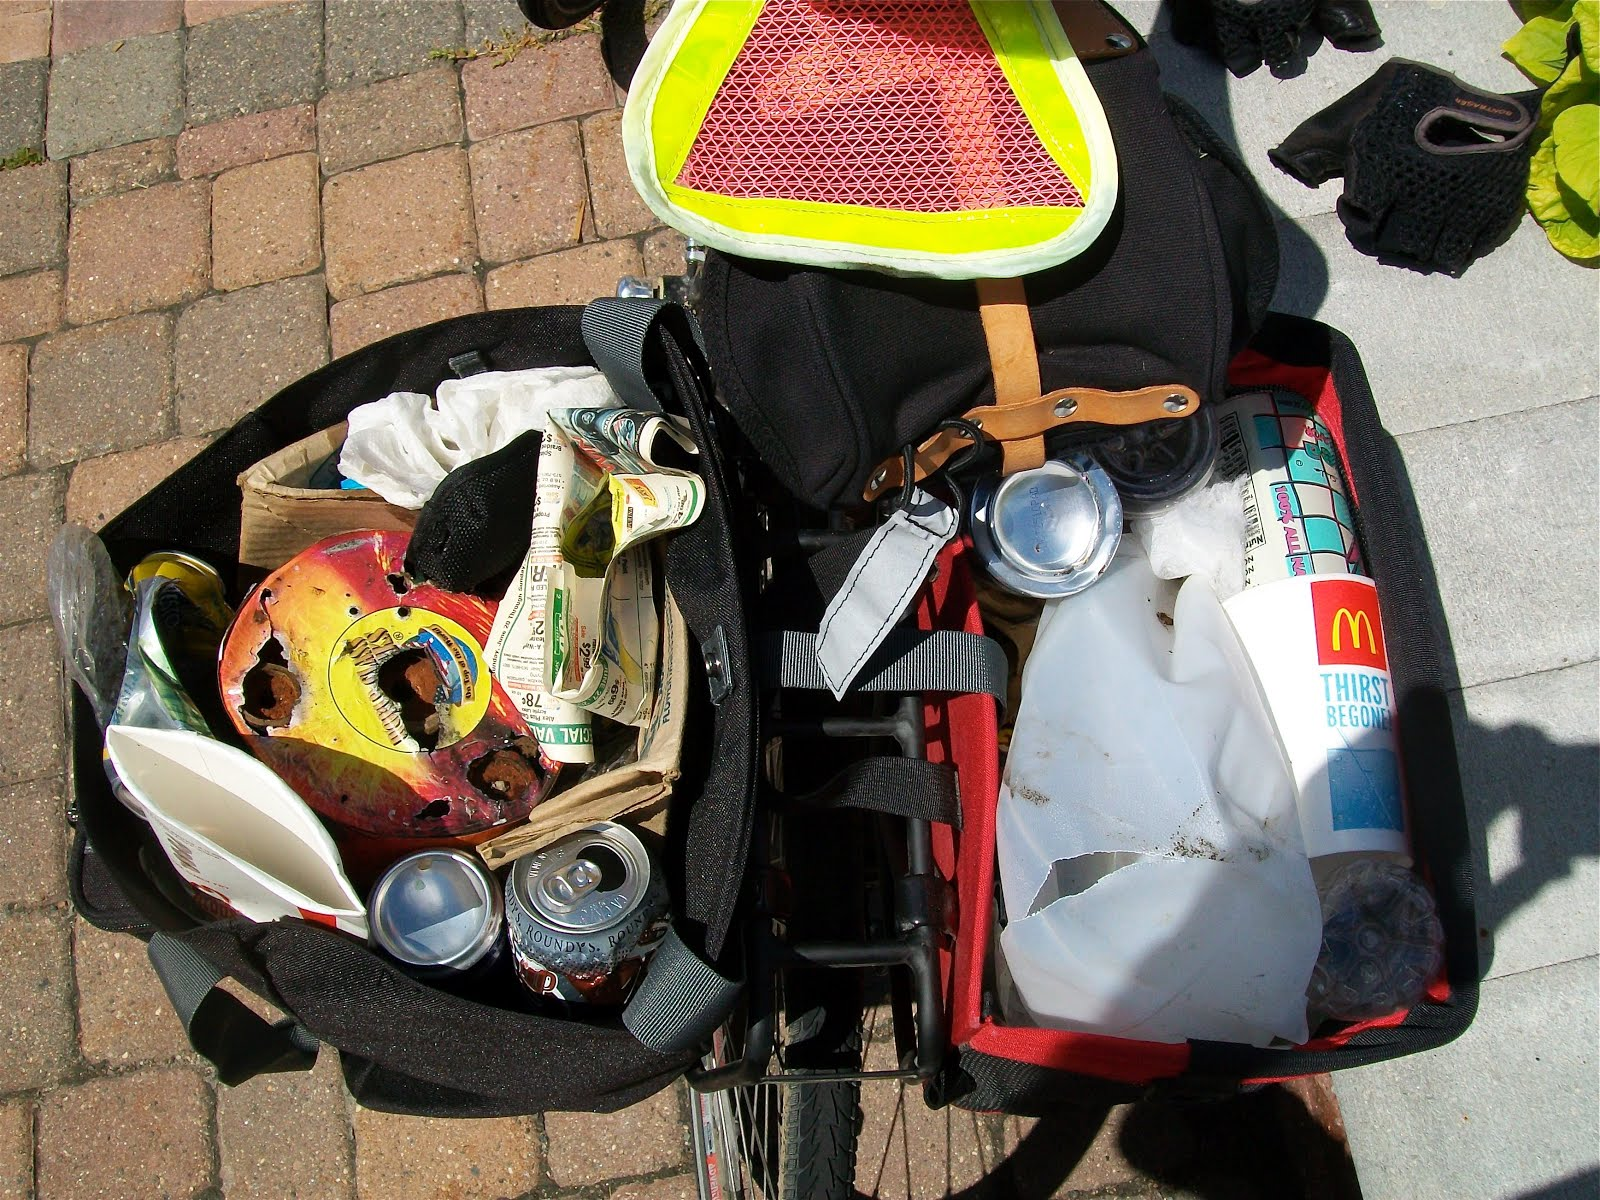 Still Plenty of Roadside Litter for Velosters to Clean Up.